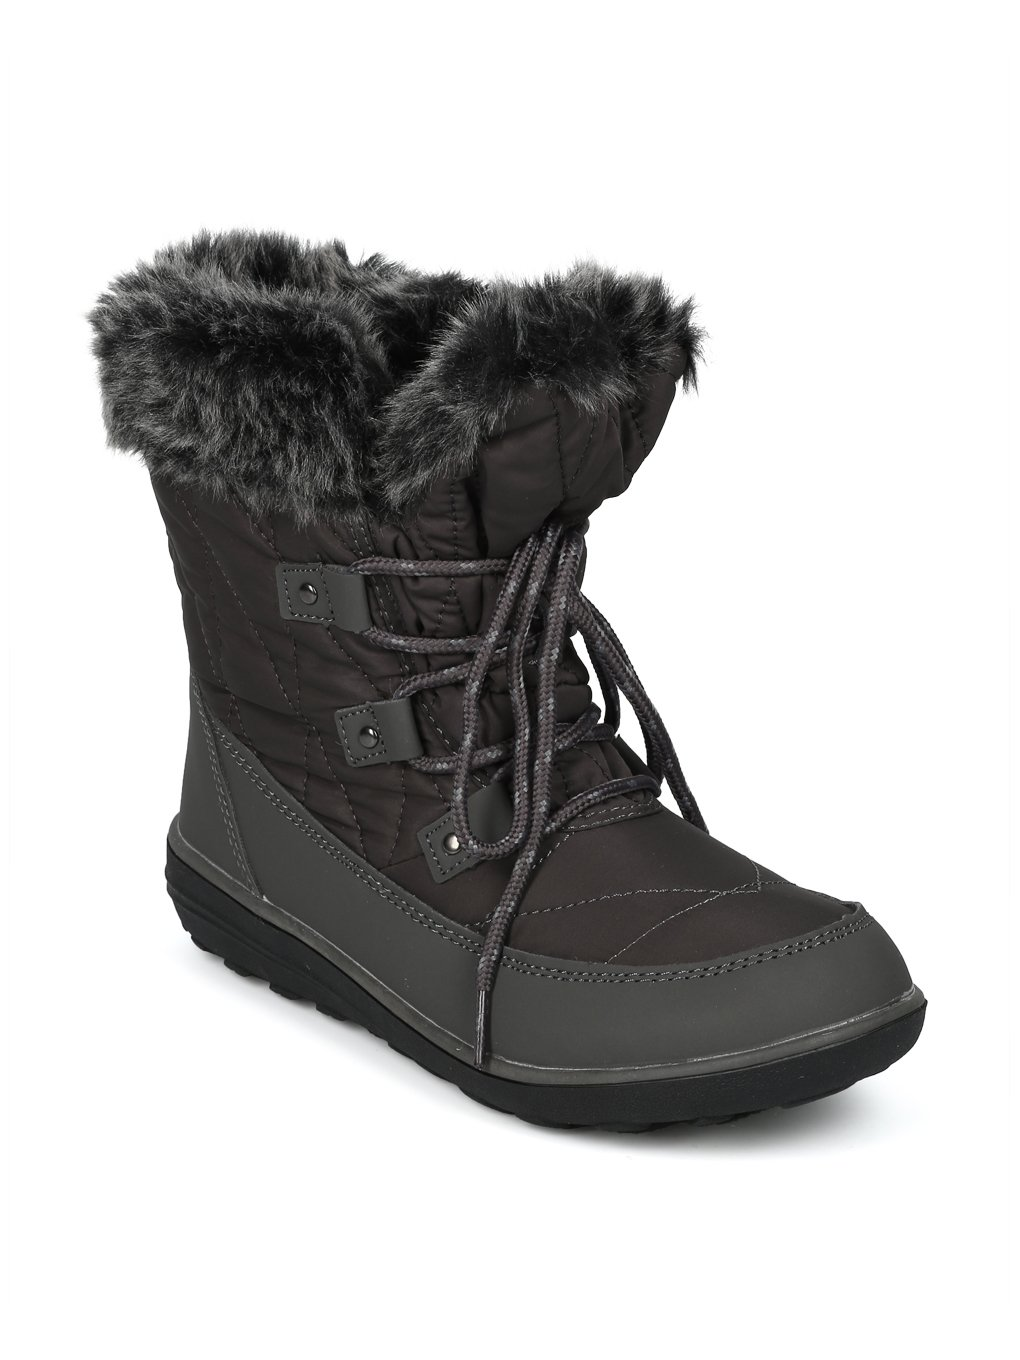 Alrisco Faux Fur Trim Lace up Outdoor Winter Boot HG06 B078MNN36M 8 M US|Grey Mix Media